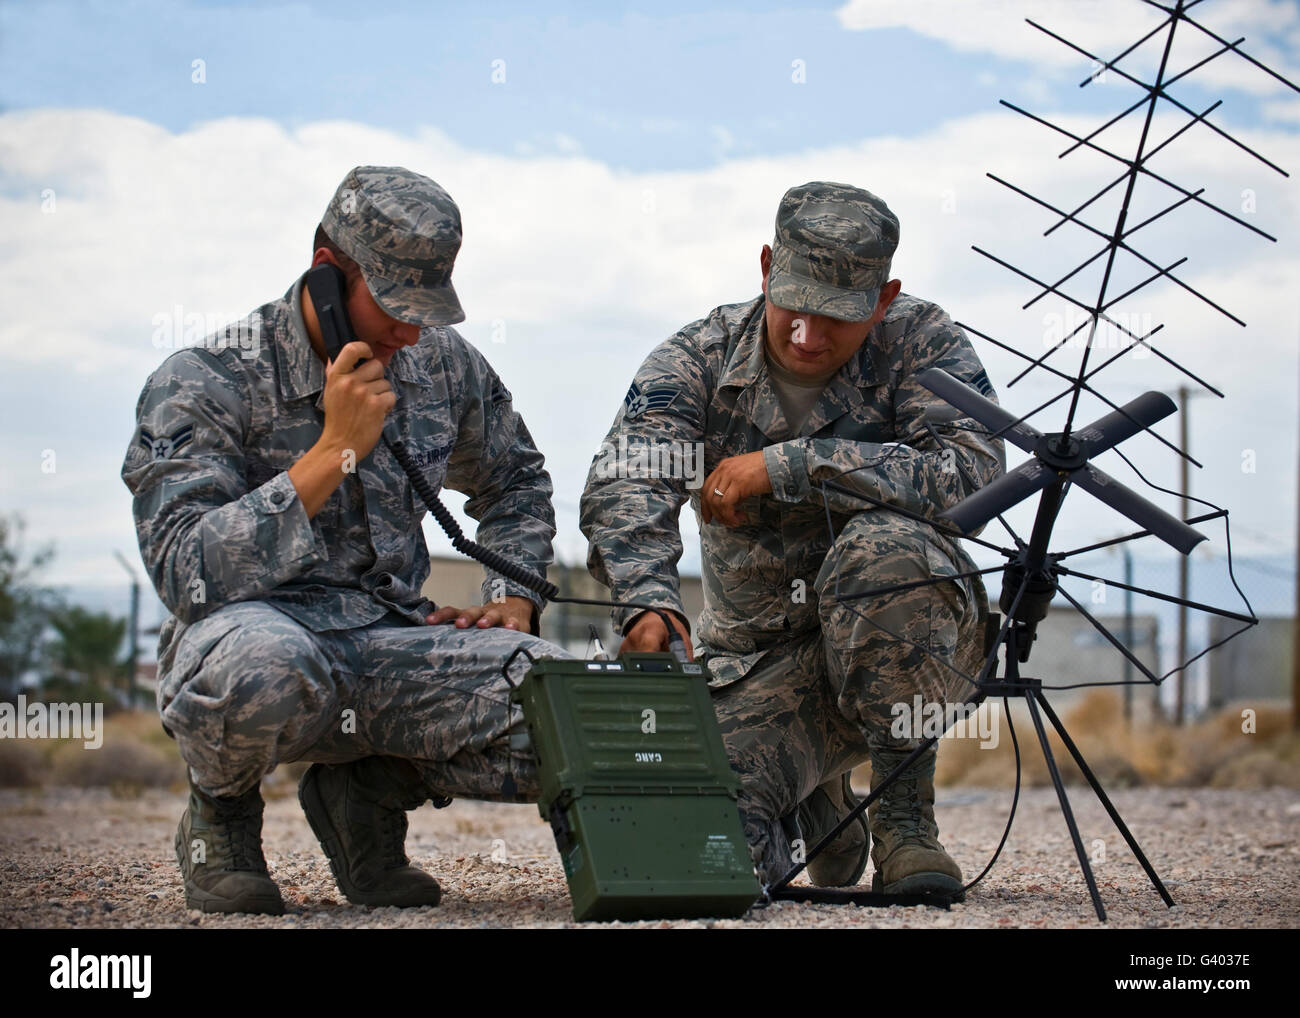 Airmen operate a mobile ground radio satellite system. - Stock Image